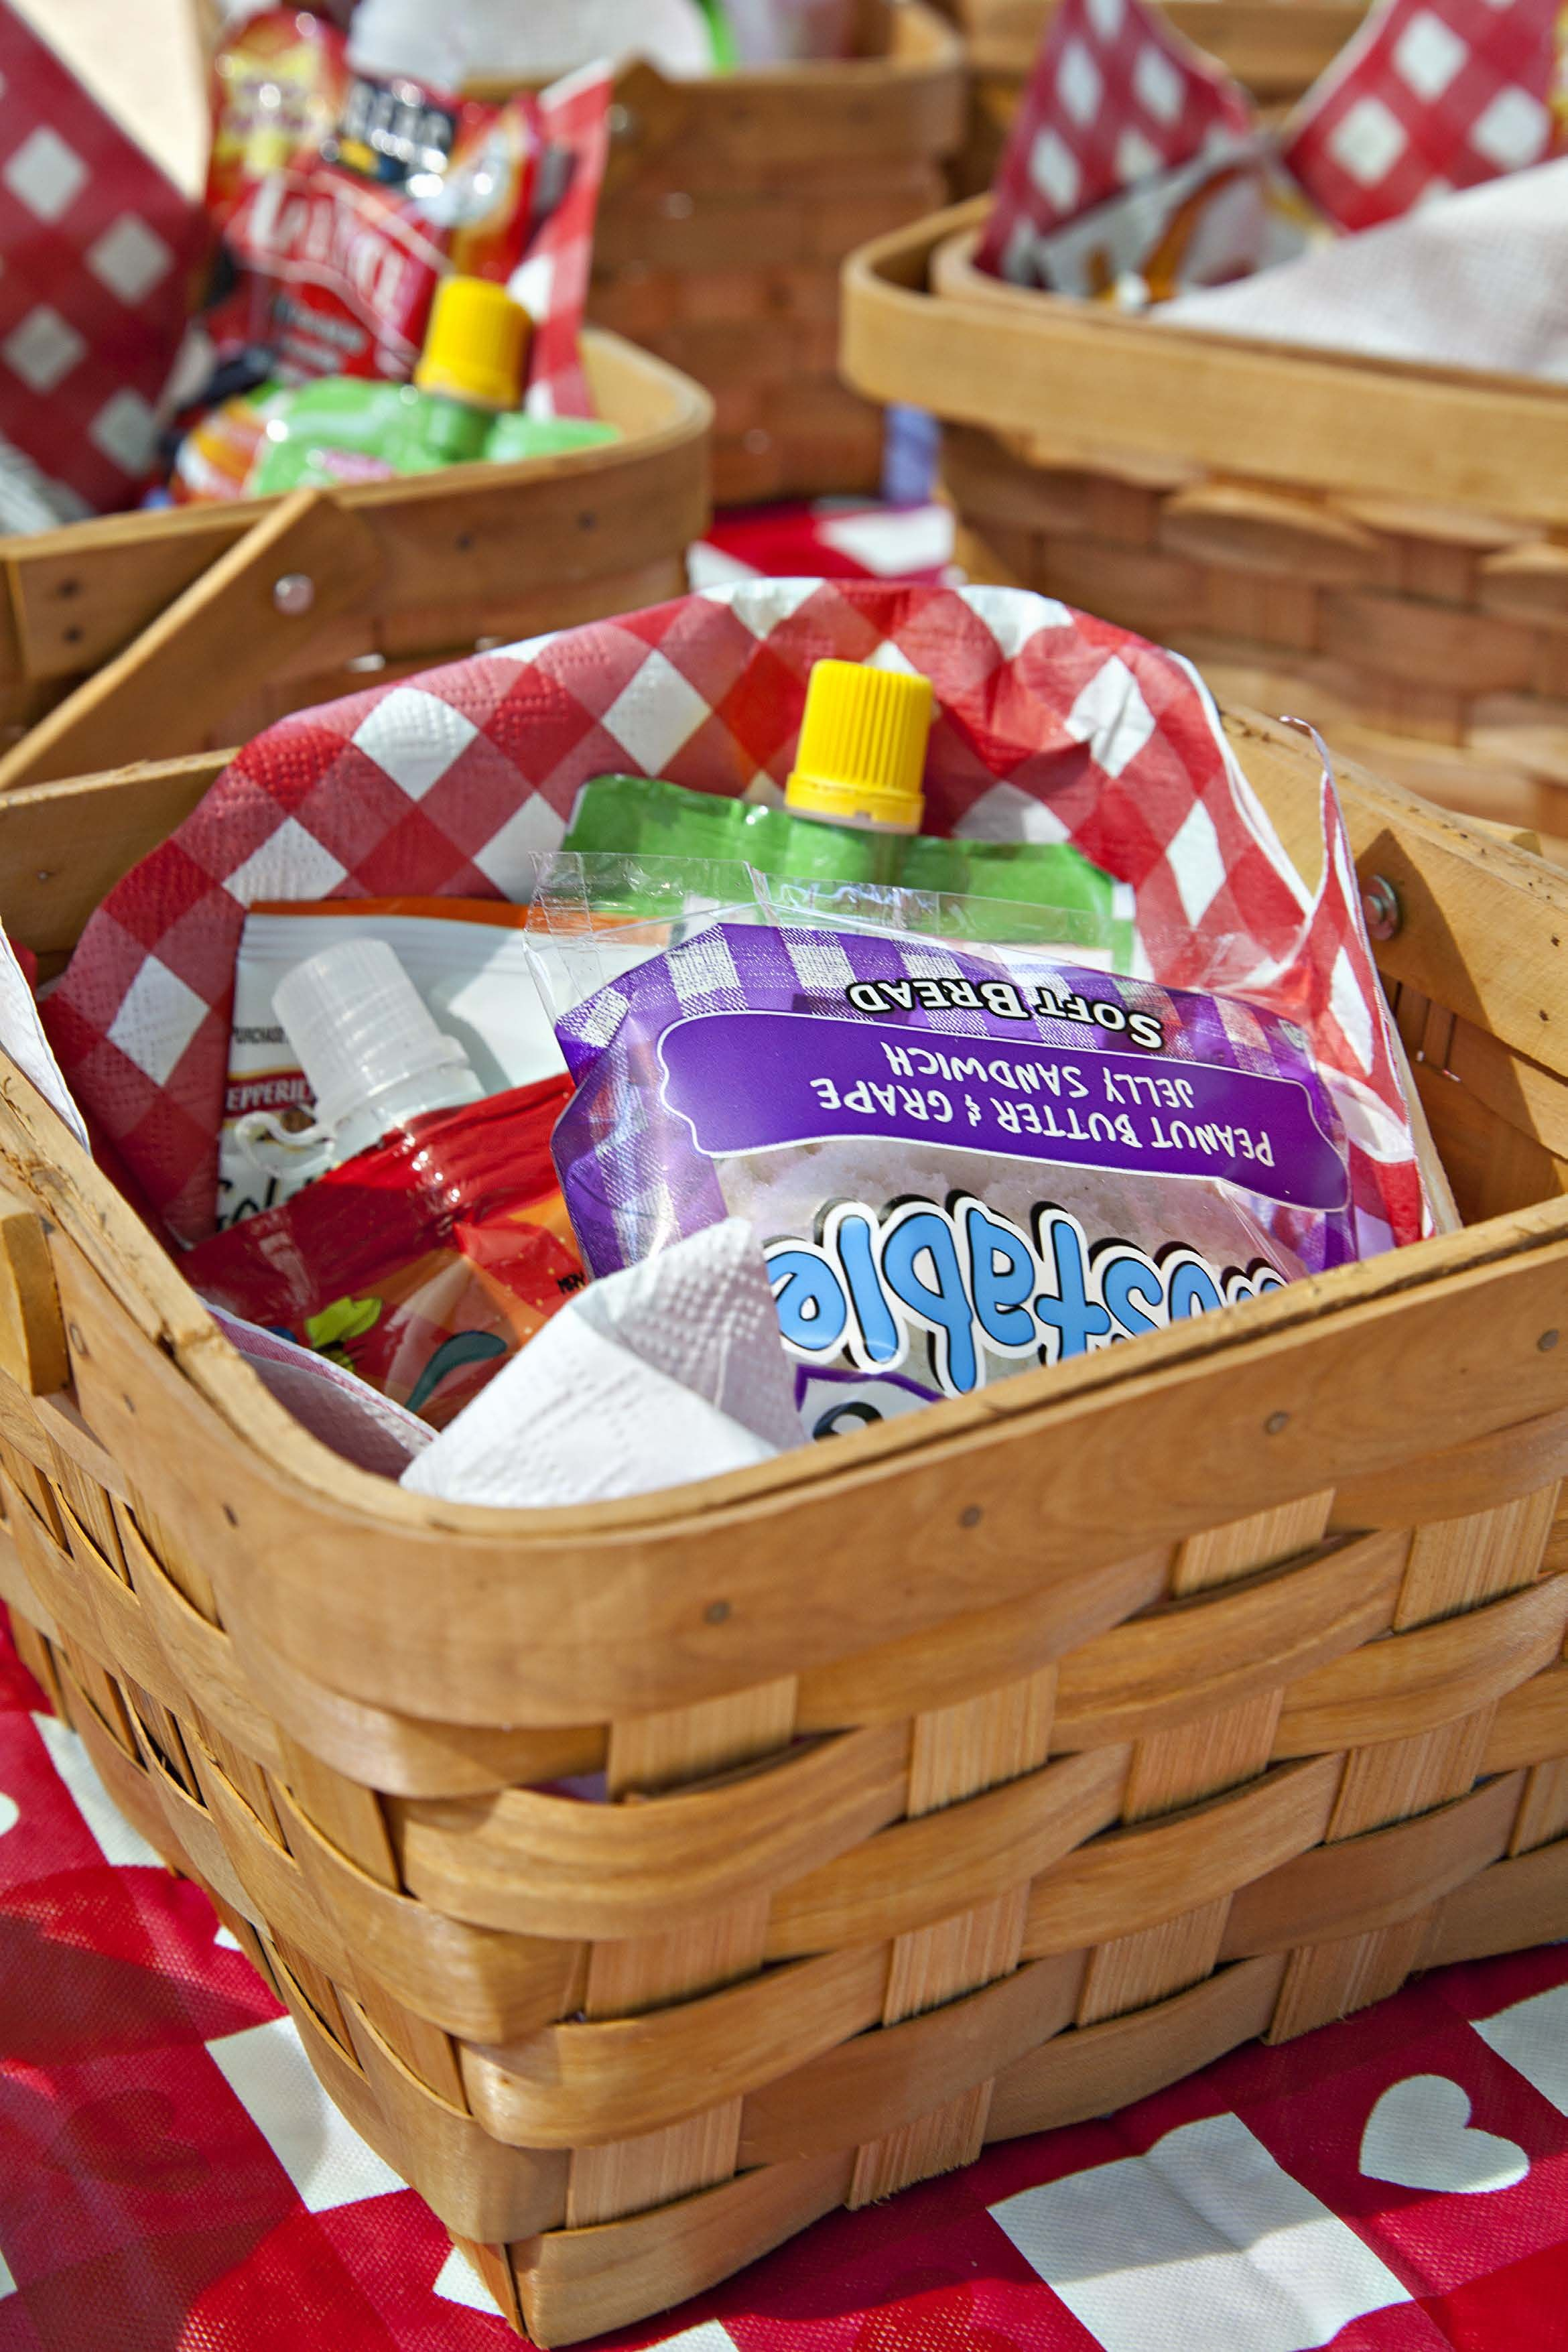 Individual picnic lunch baskets for each person at the Picnic Birthday Party!